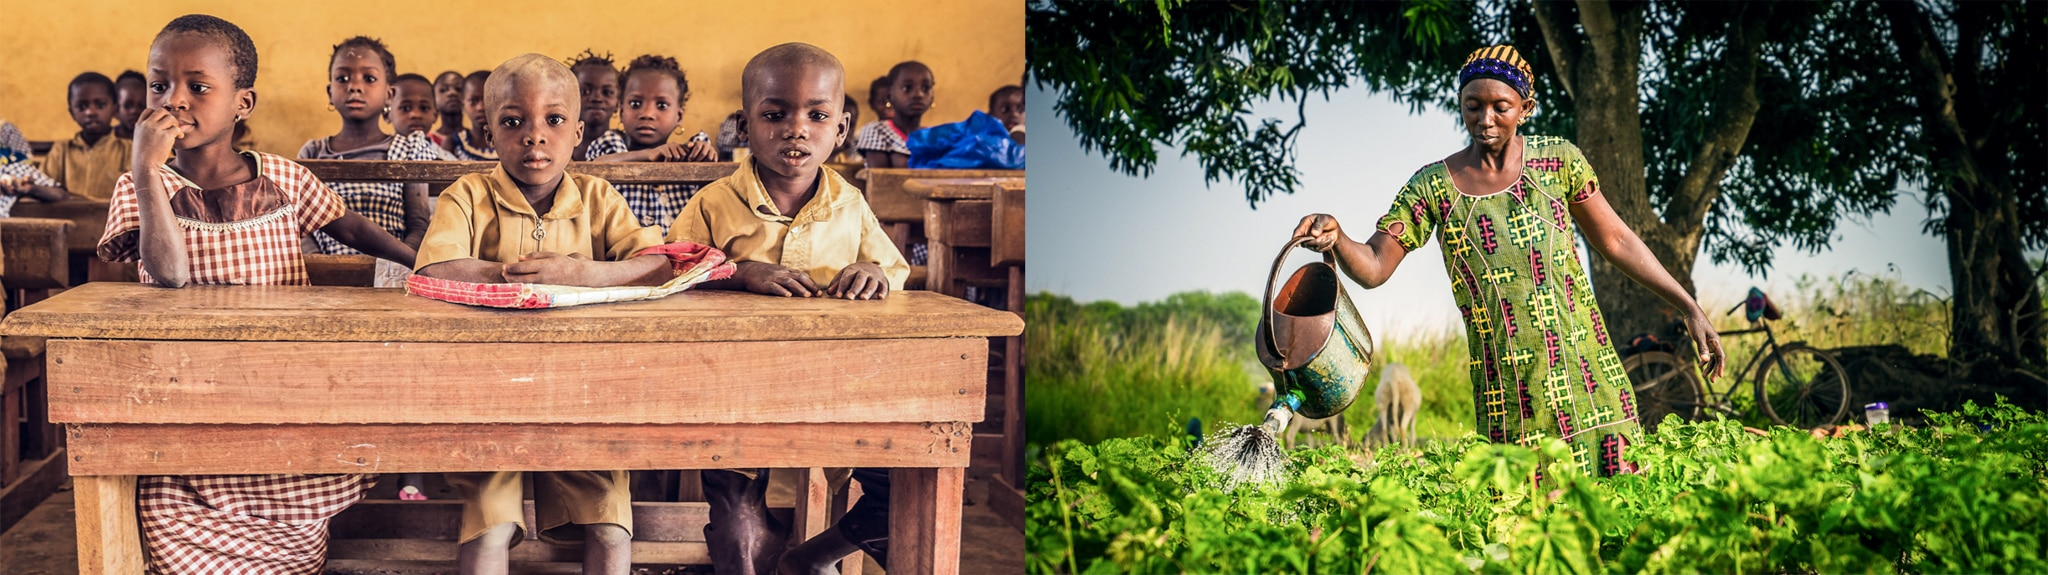 On left, schoolchildren at desks; on right, a woman watering a vegetable garden (USAID/Sandra Coburn)